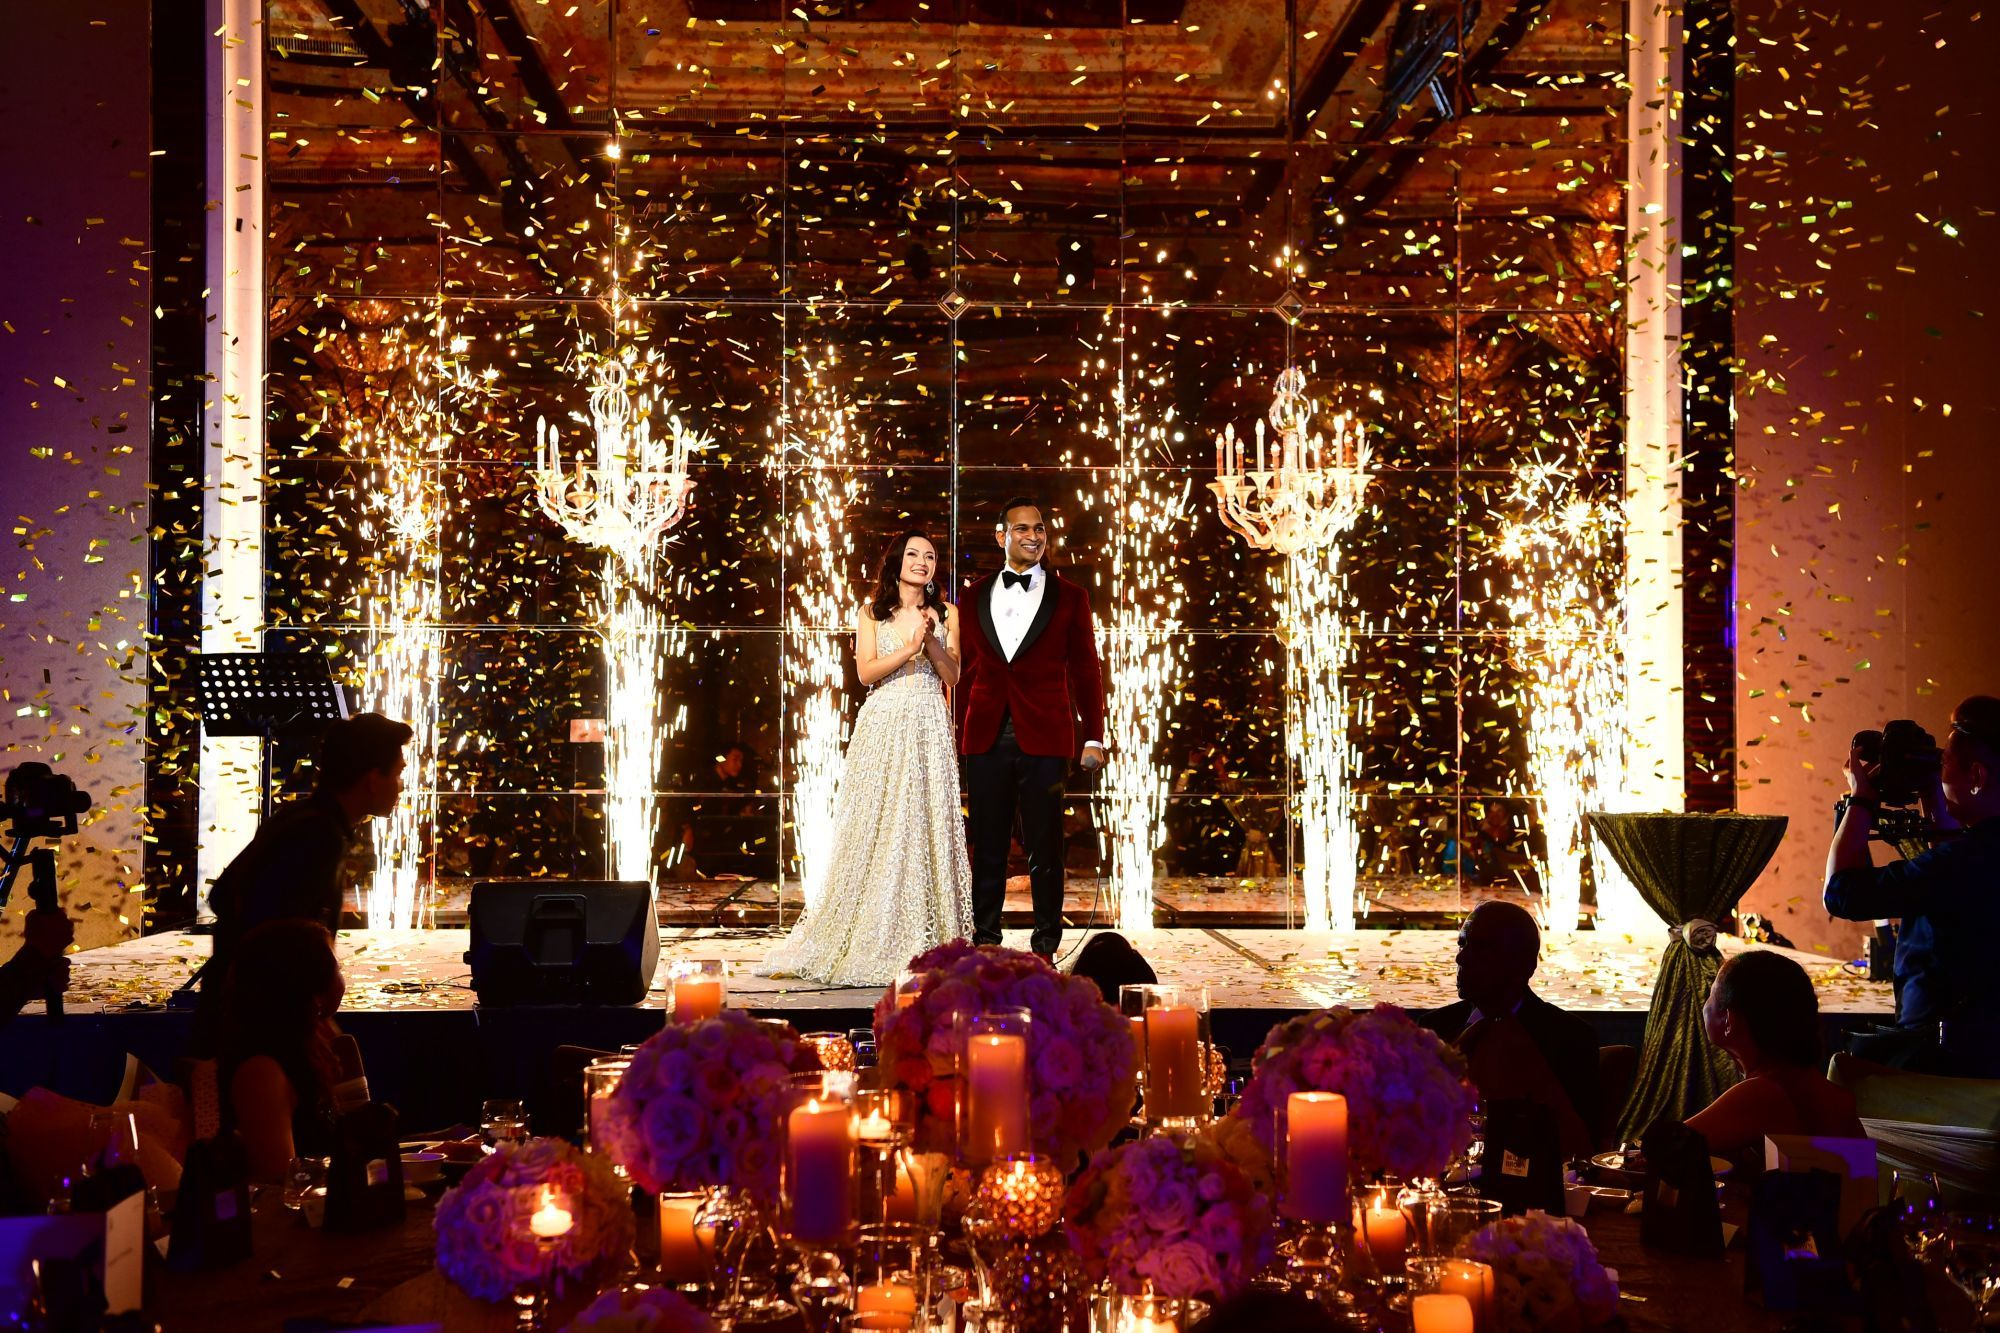 The Best Society Weddings Of 2018-2019